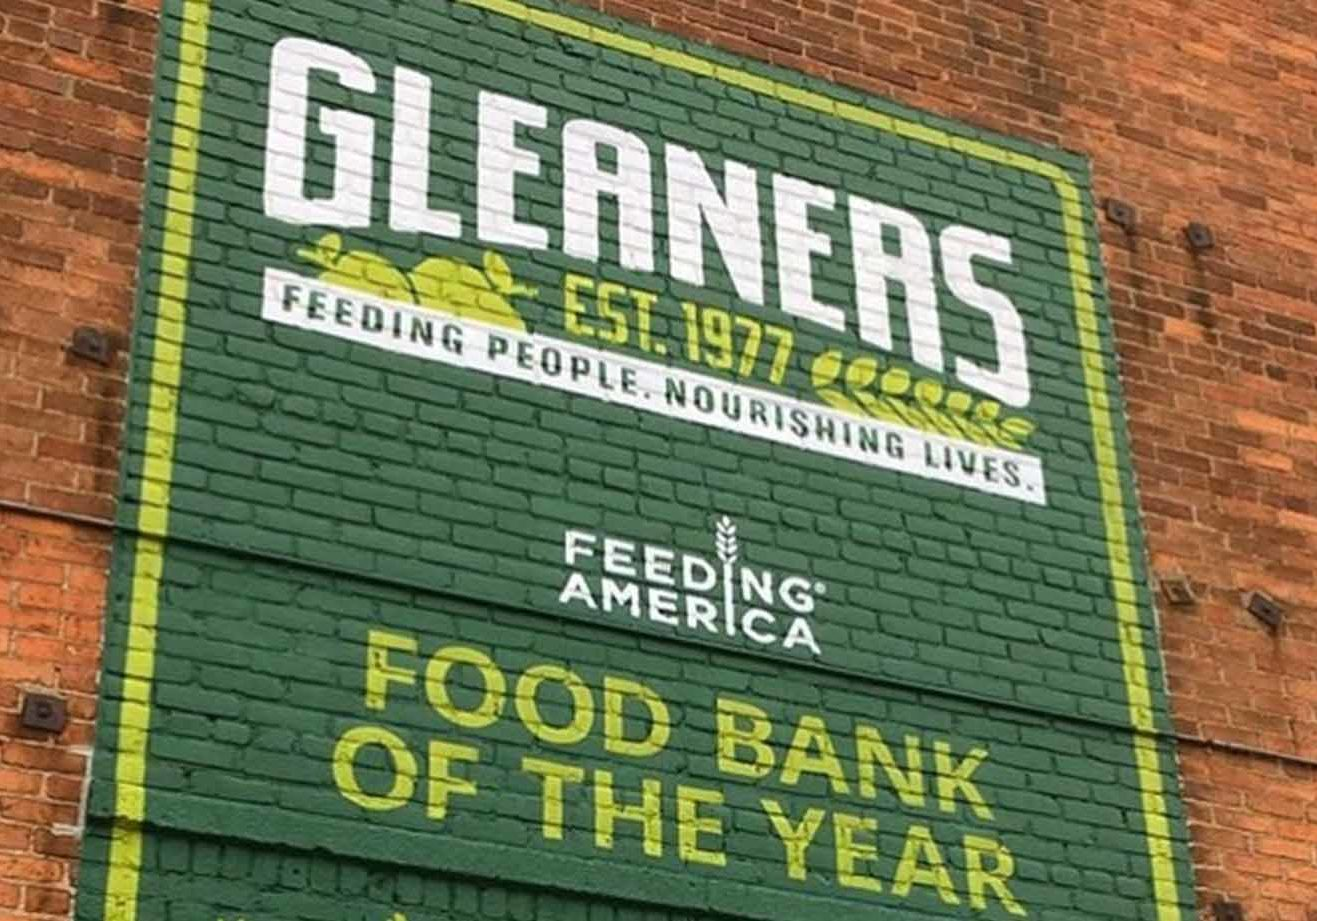 Gleaners Food Bank Of The Year Cover